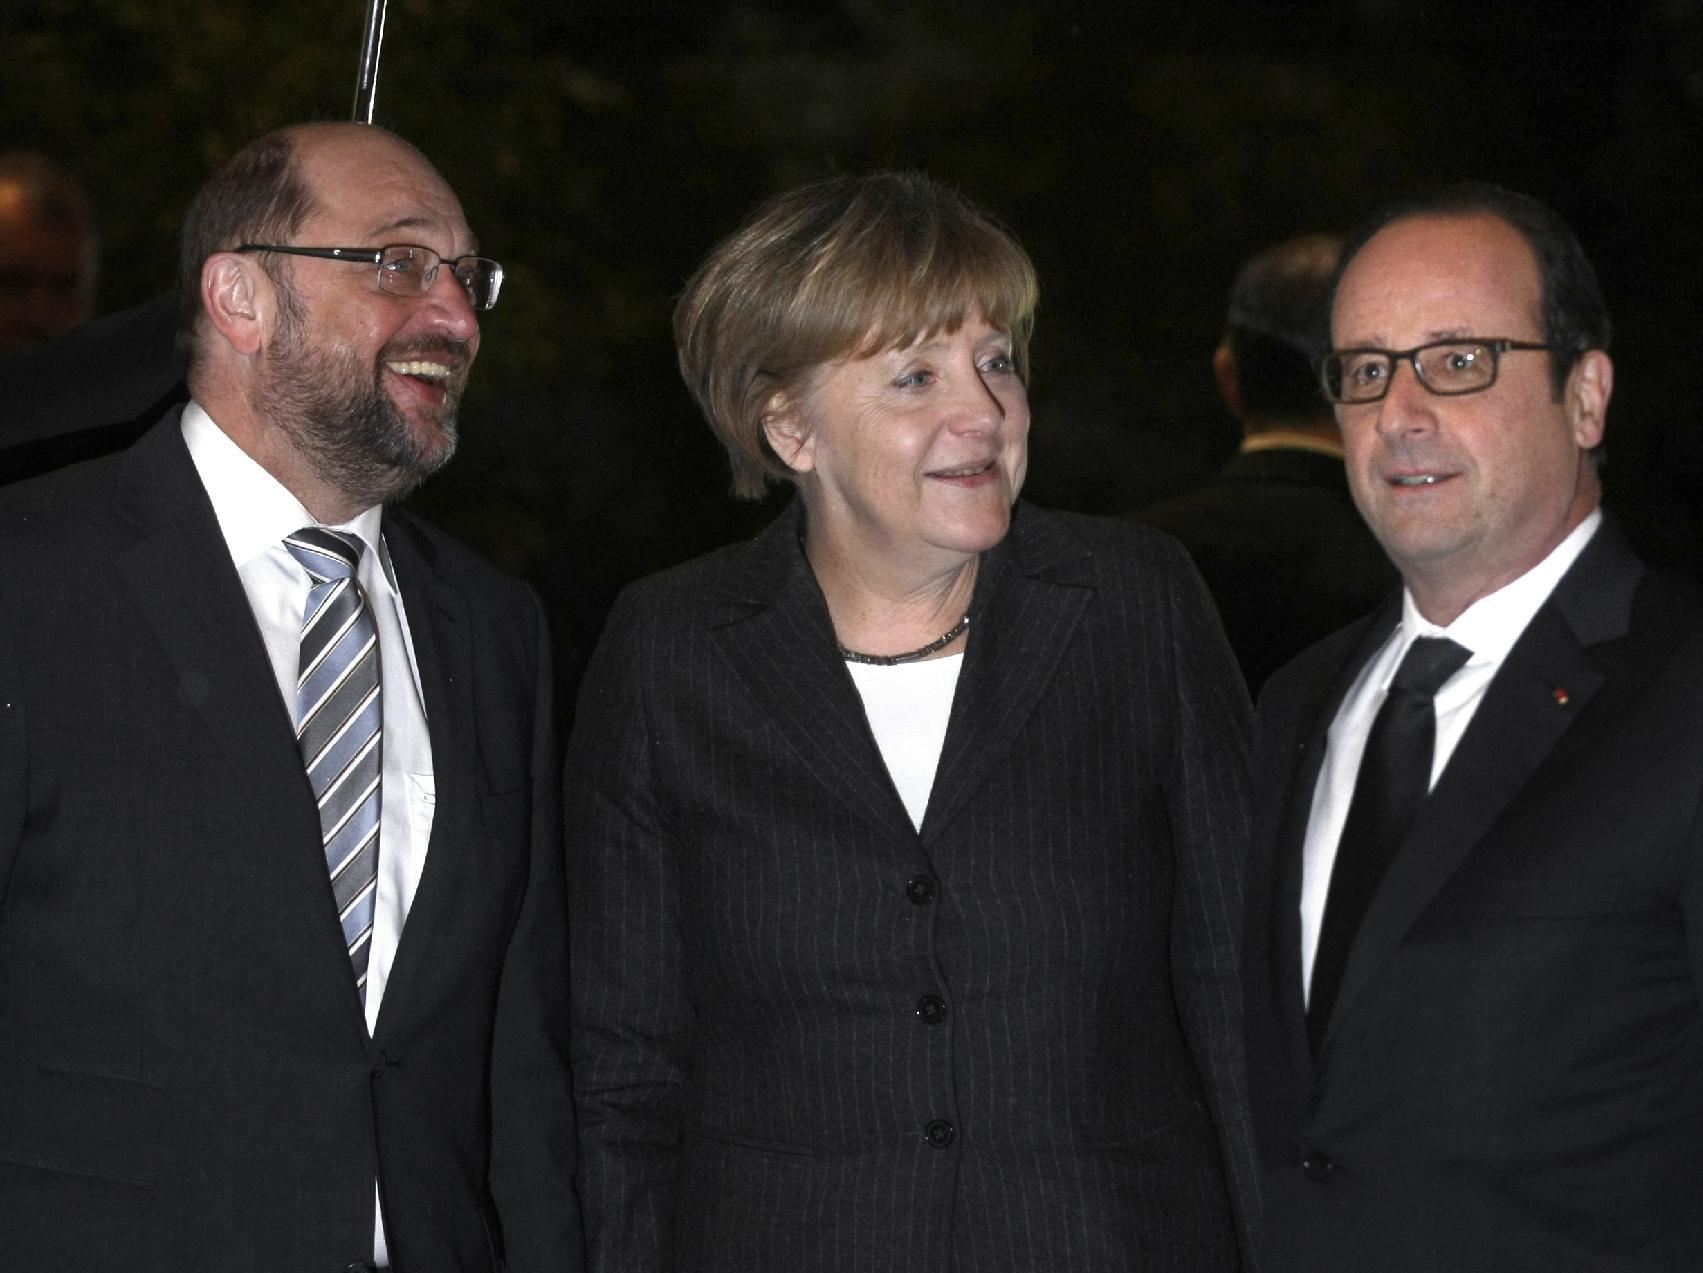 Merkel rules out debt reduction for Greece